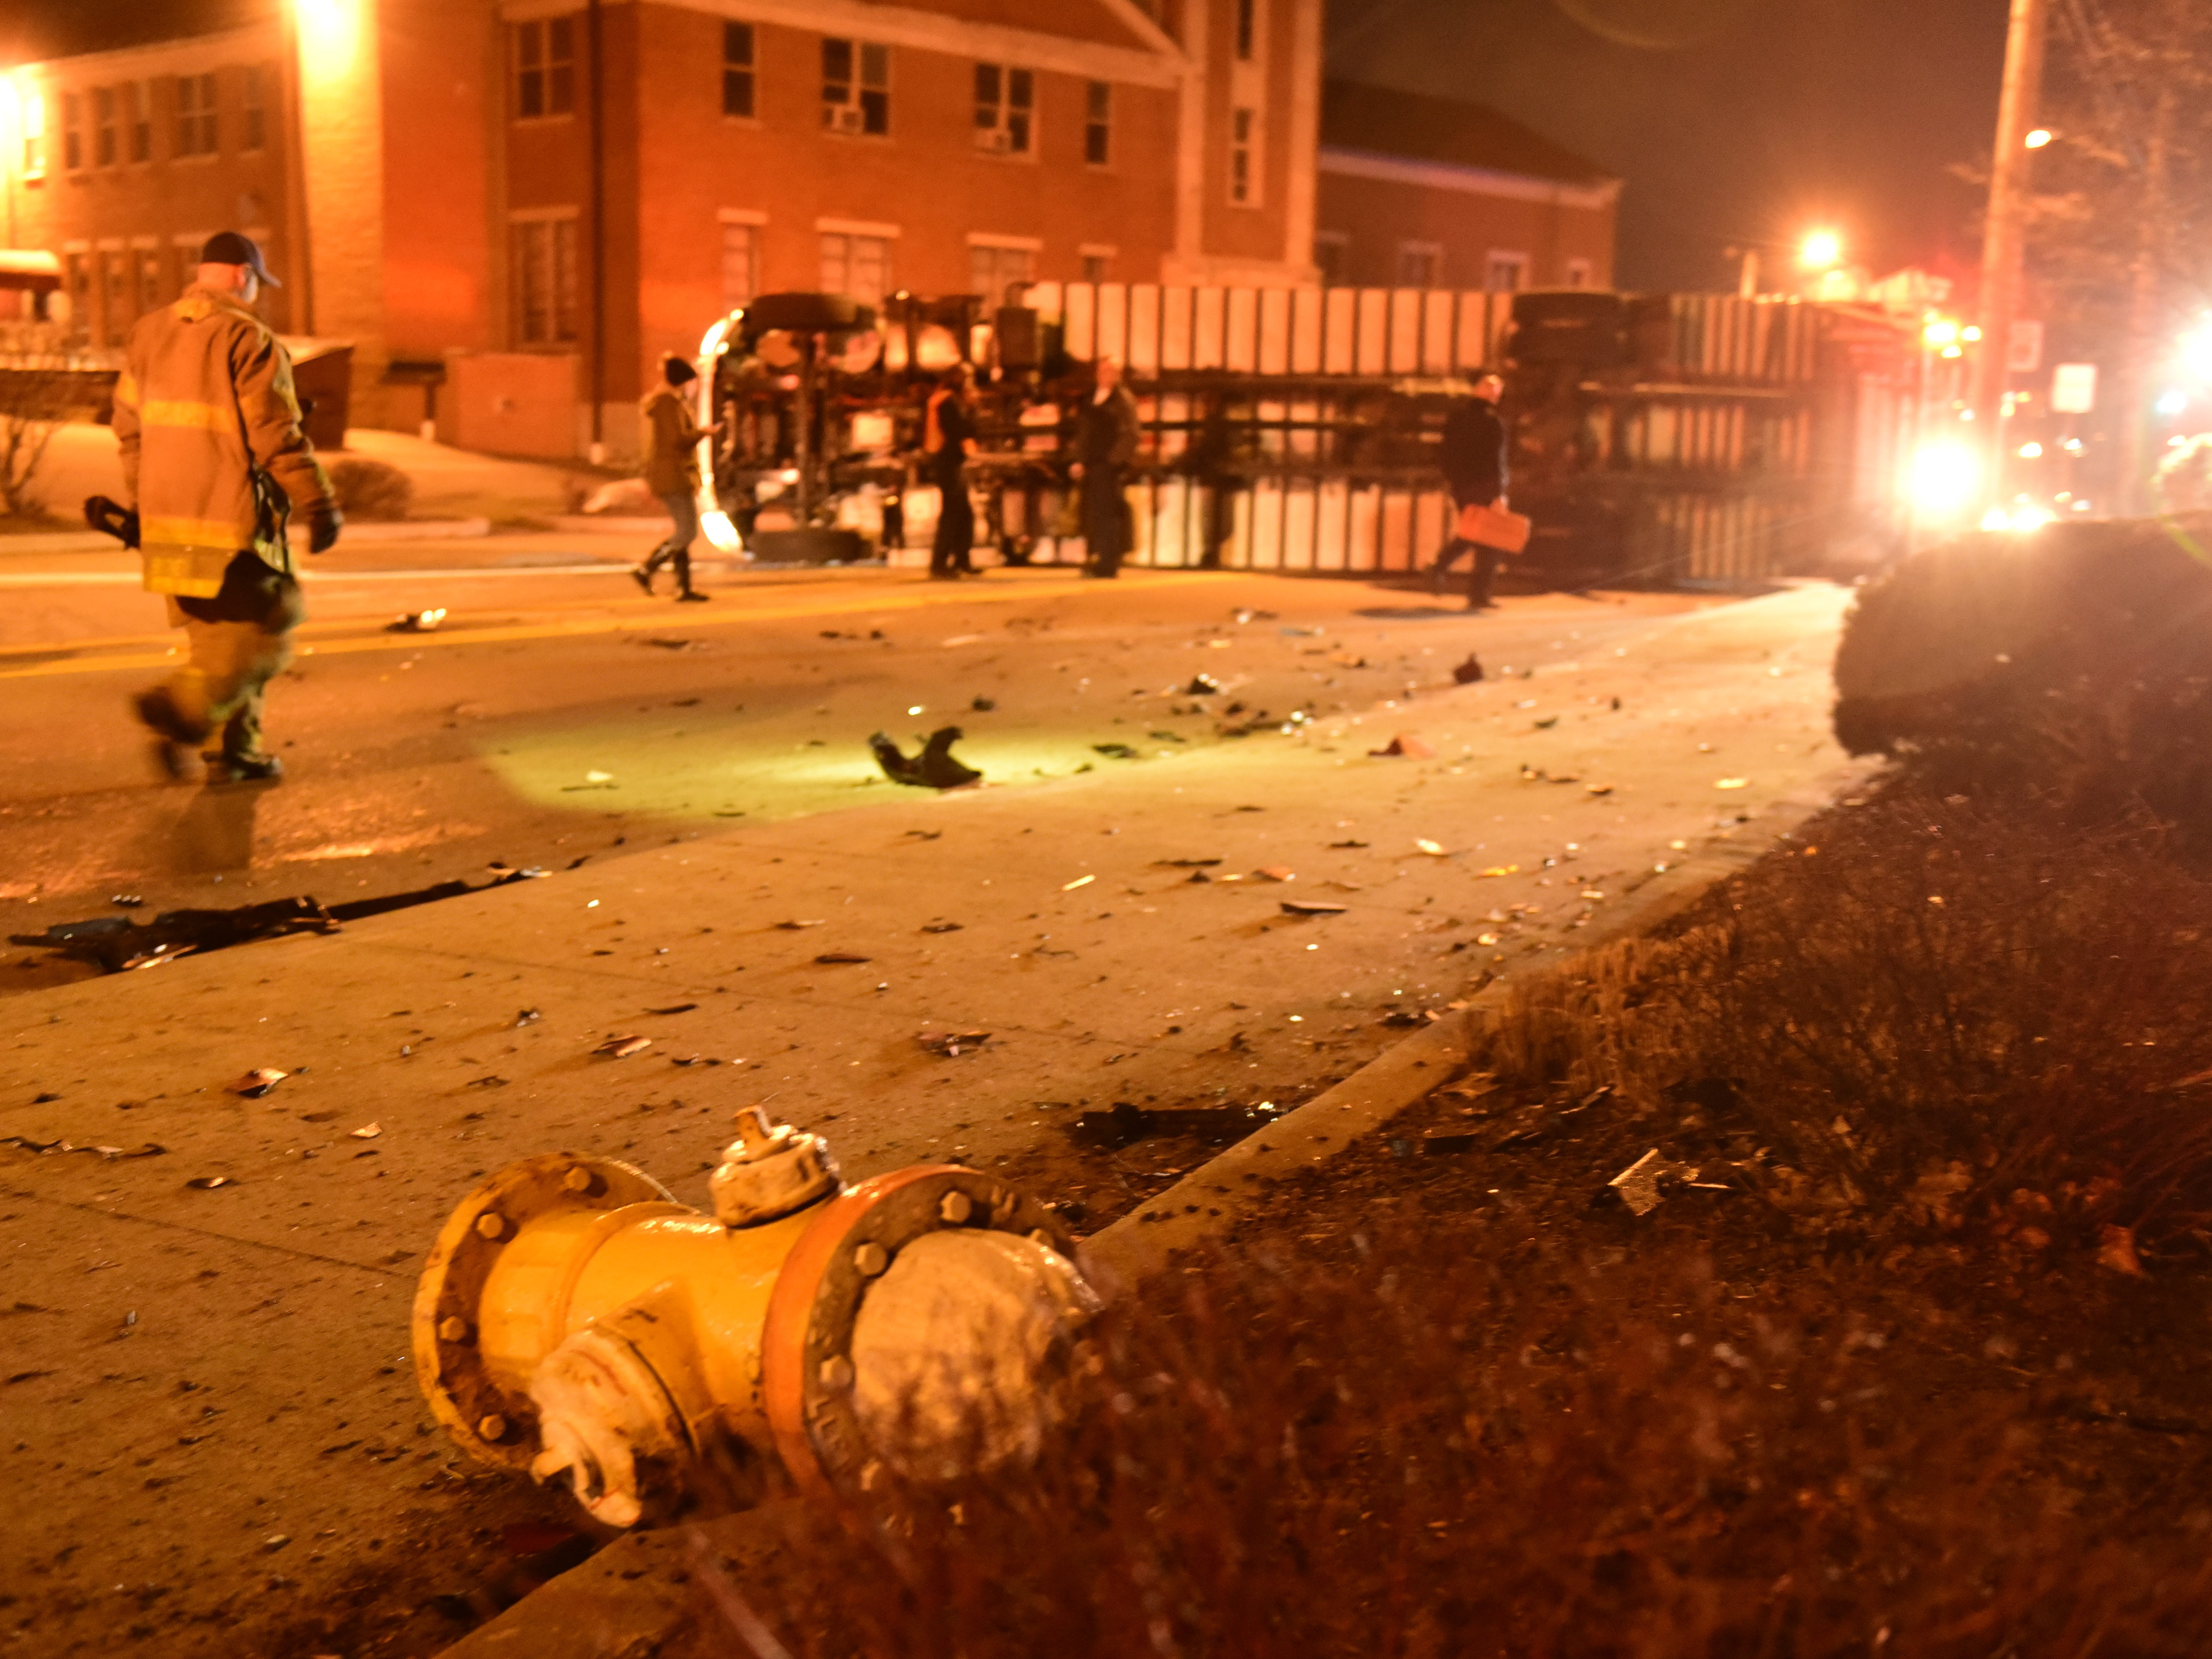 A fire hydrant was broken when a tractor-trailer rolled about 9:30 p.m. Friday on South Main Street.